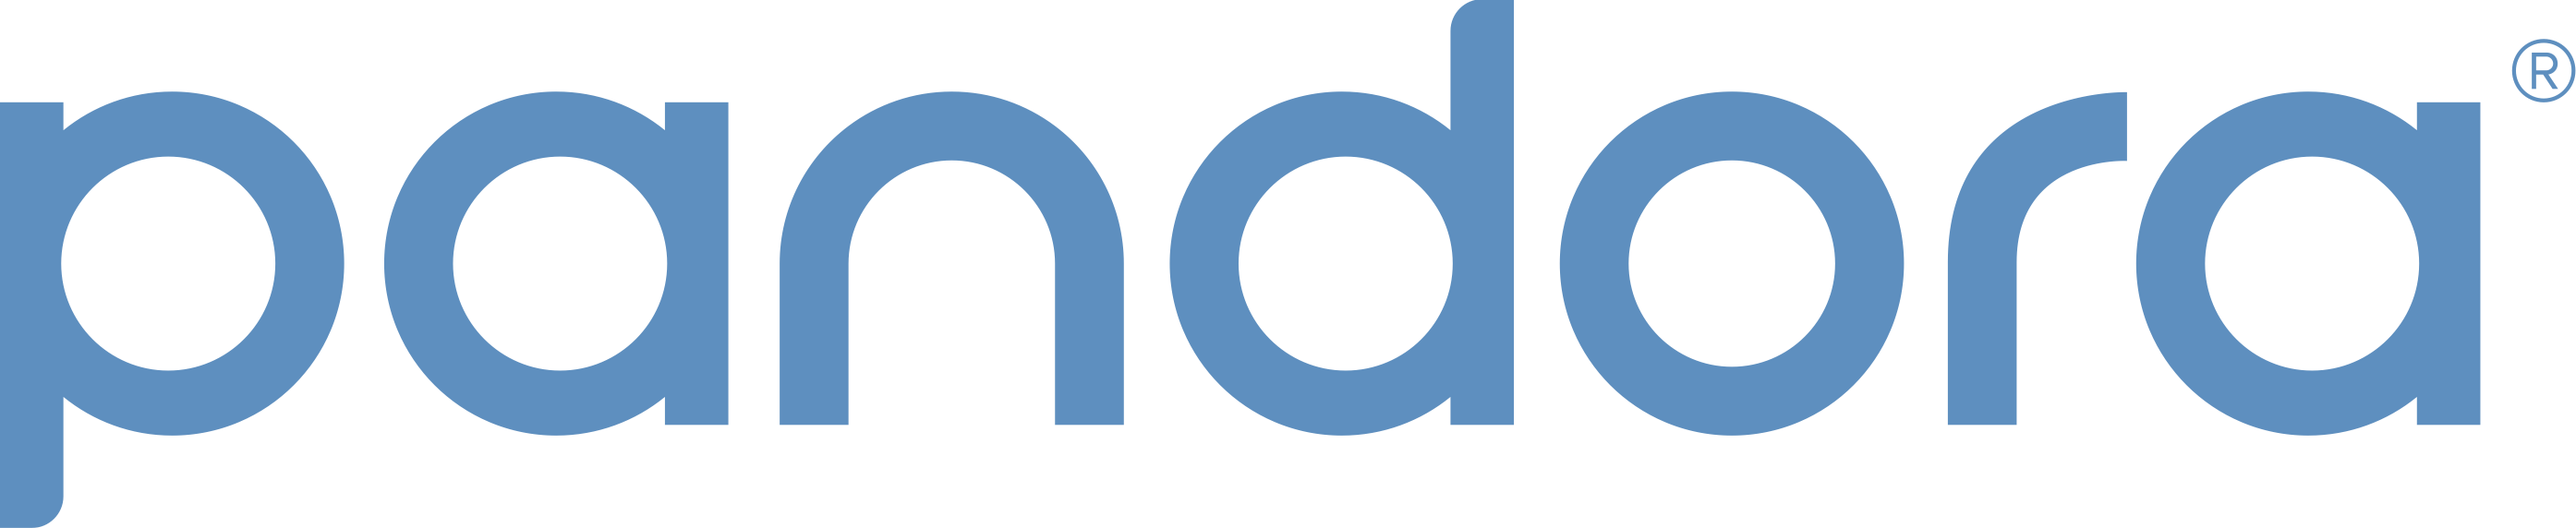 Pandora logo